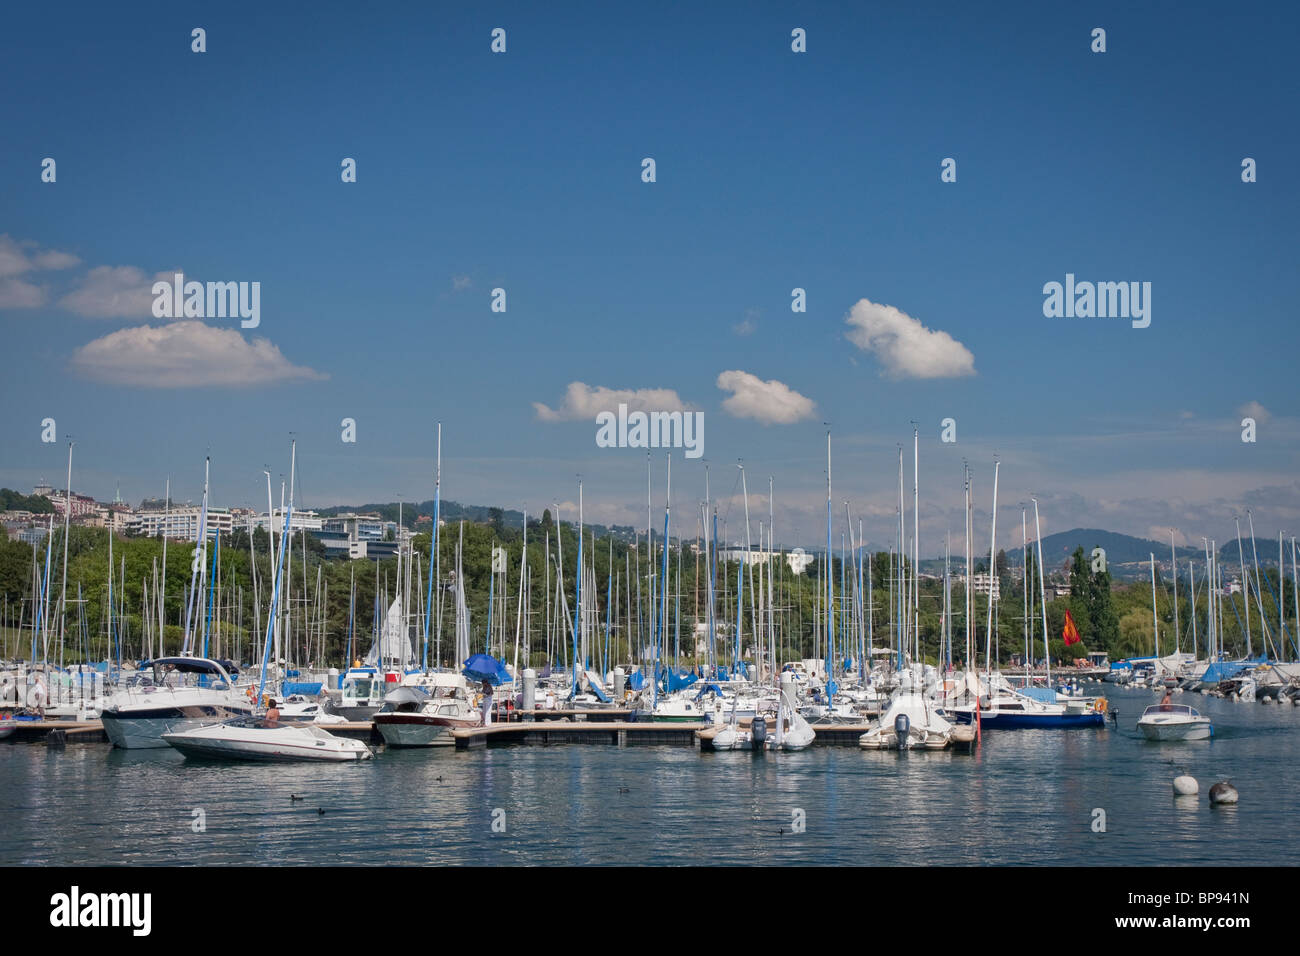 Lake Geneva marina - Vidy, Lausanne, Switzerland - Stock Image